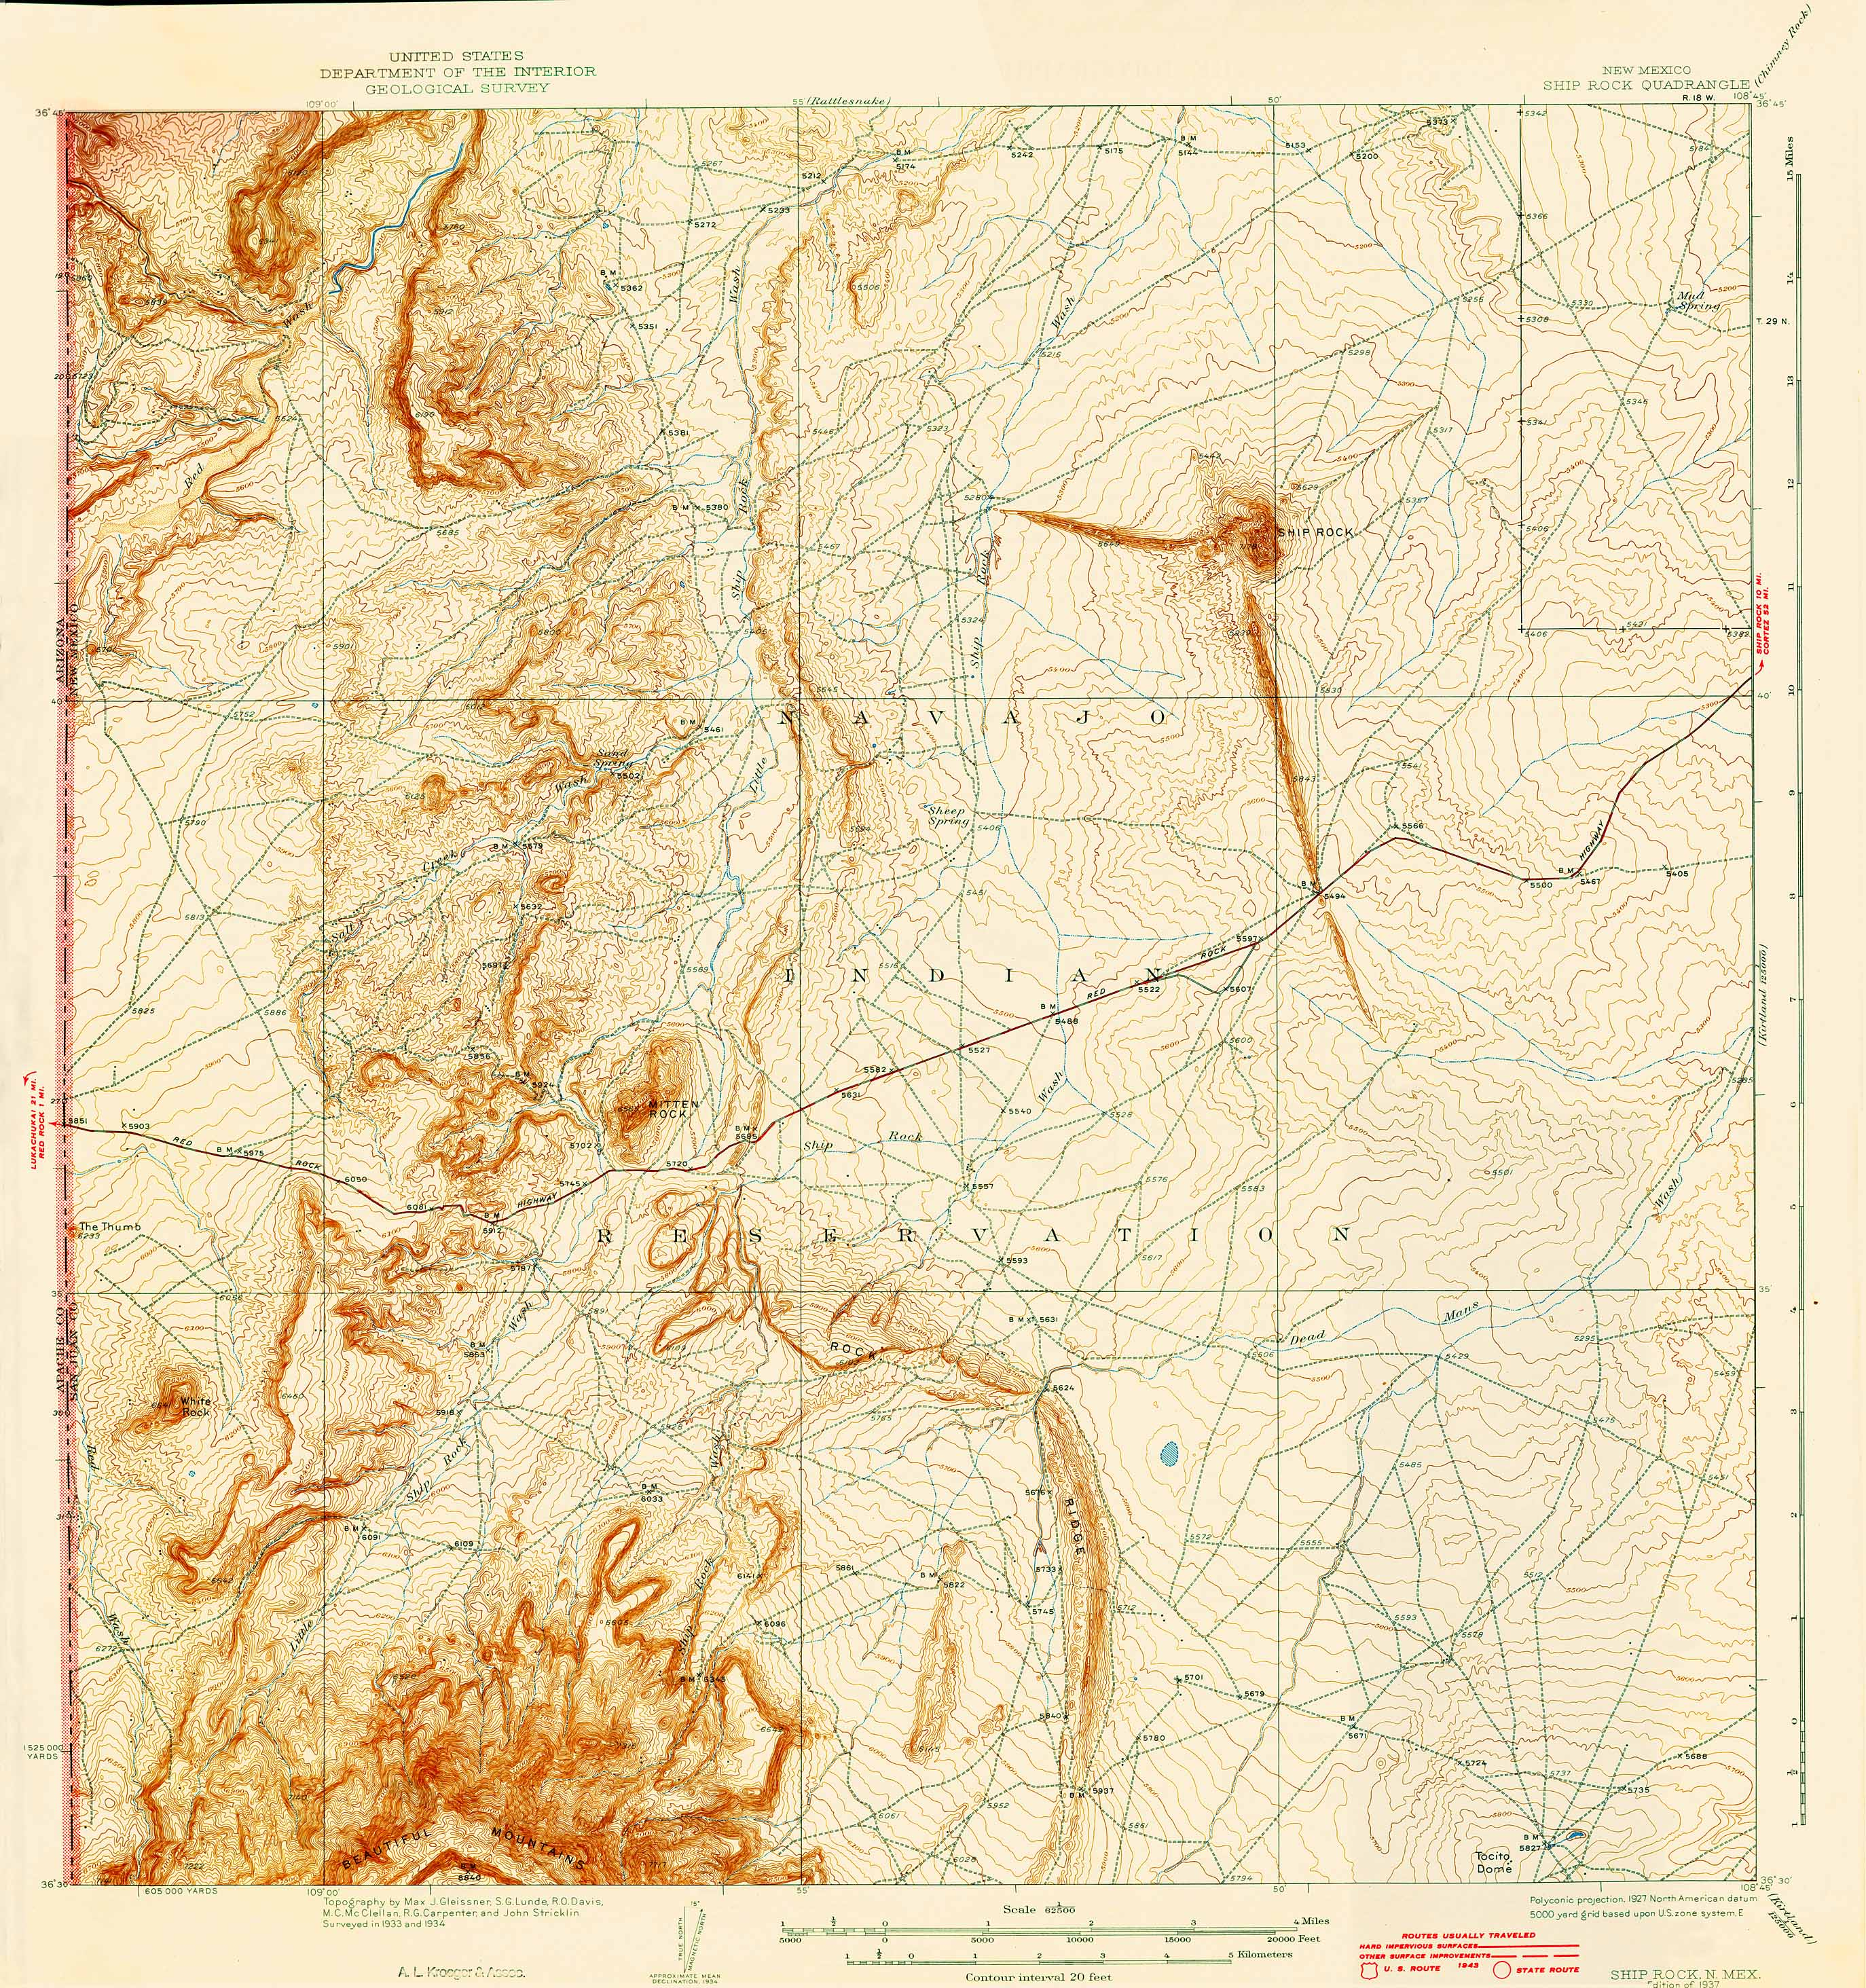 ... topographic map of Ship Rock, N.M., at the Center of Southwest Studies